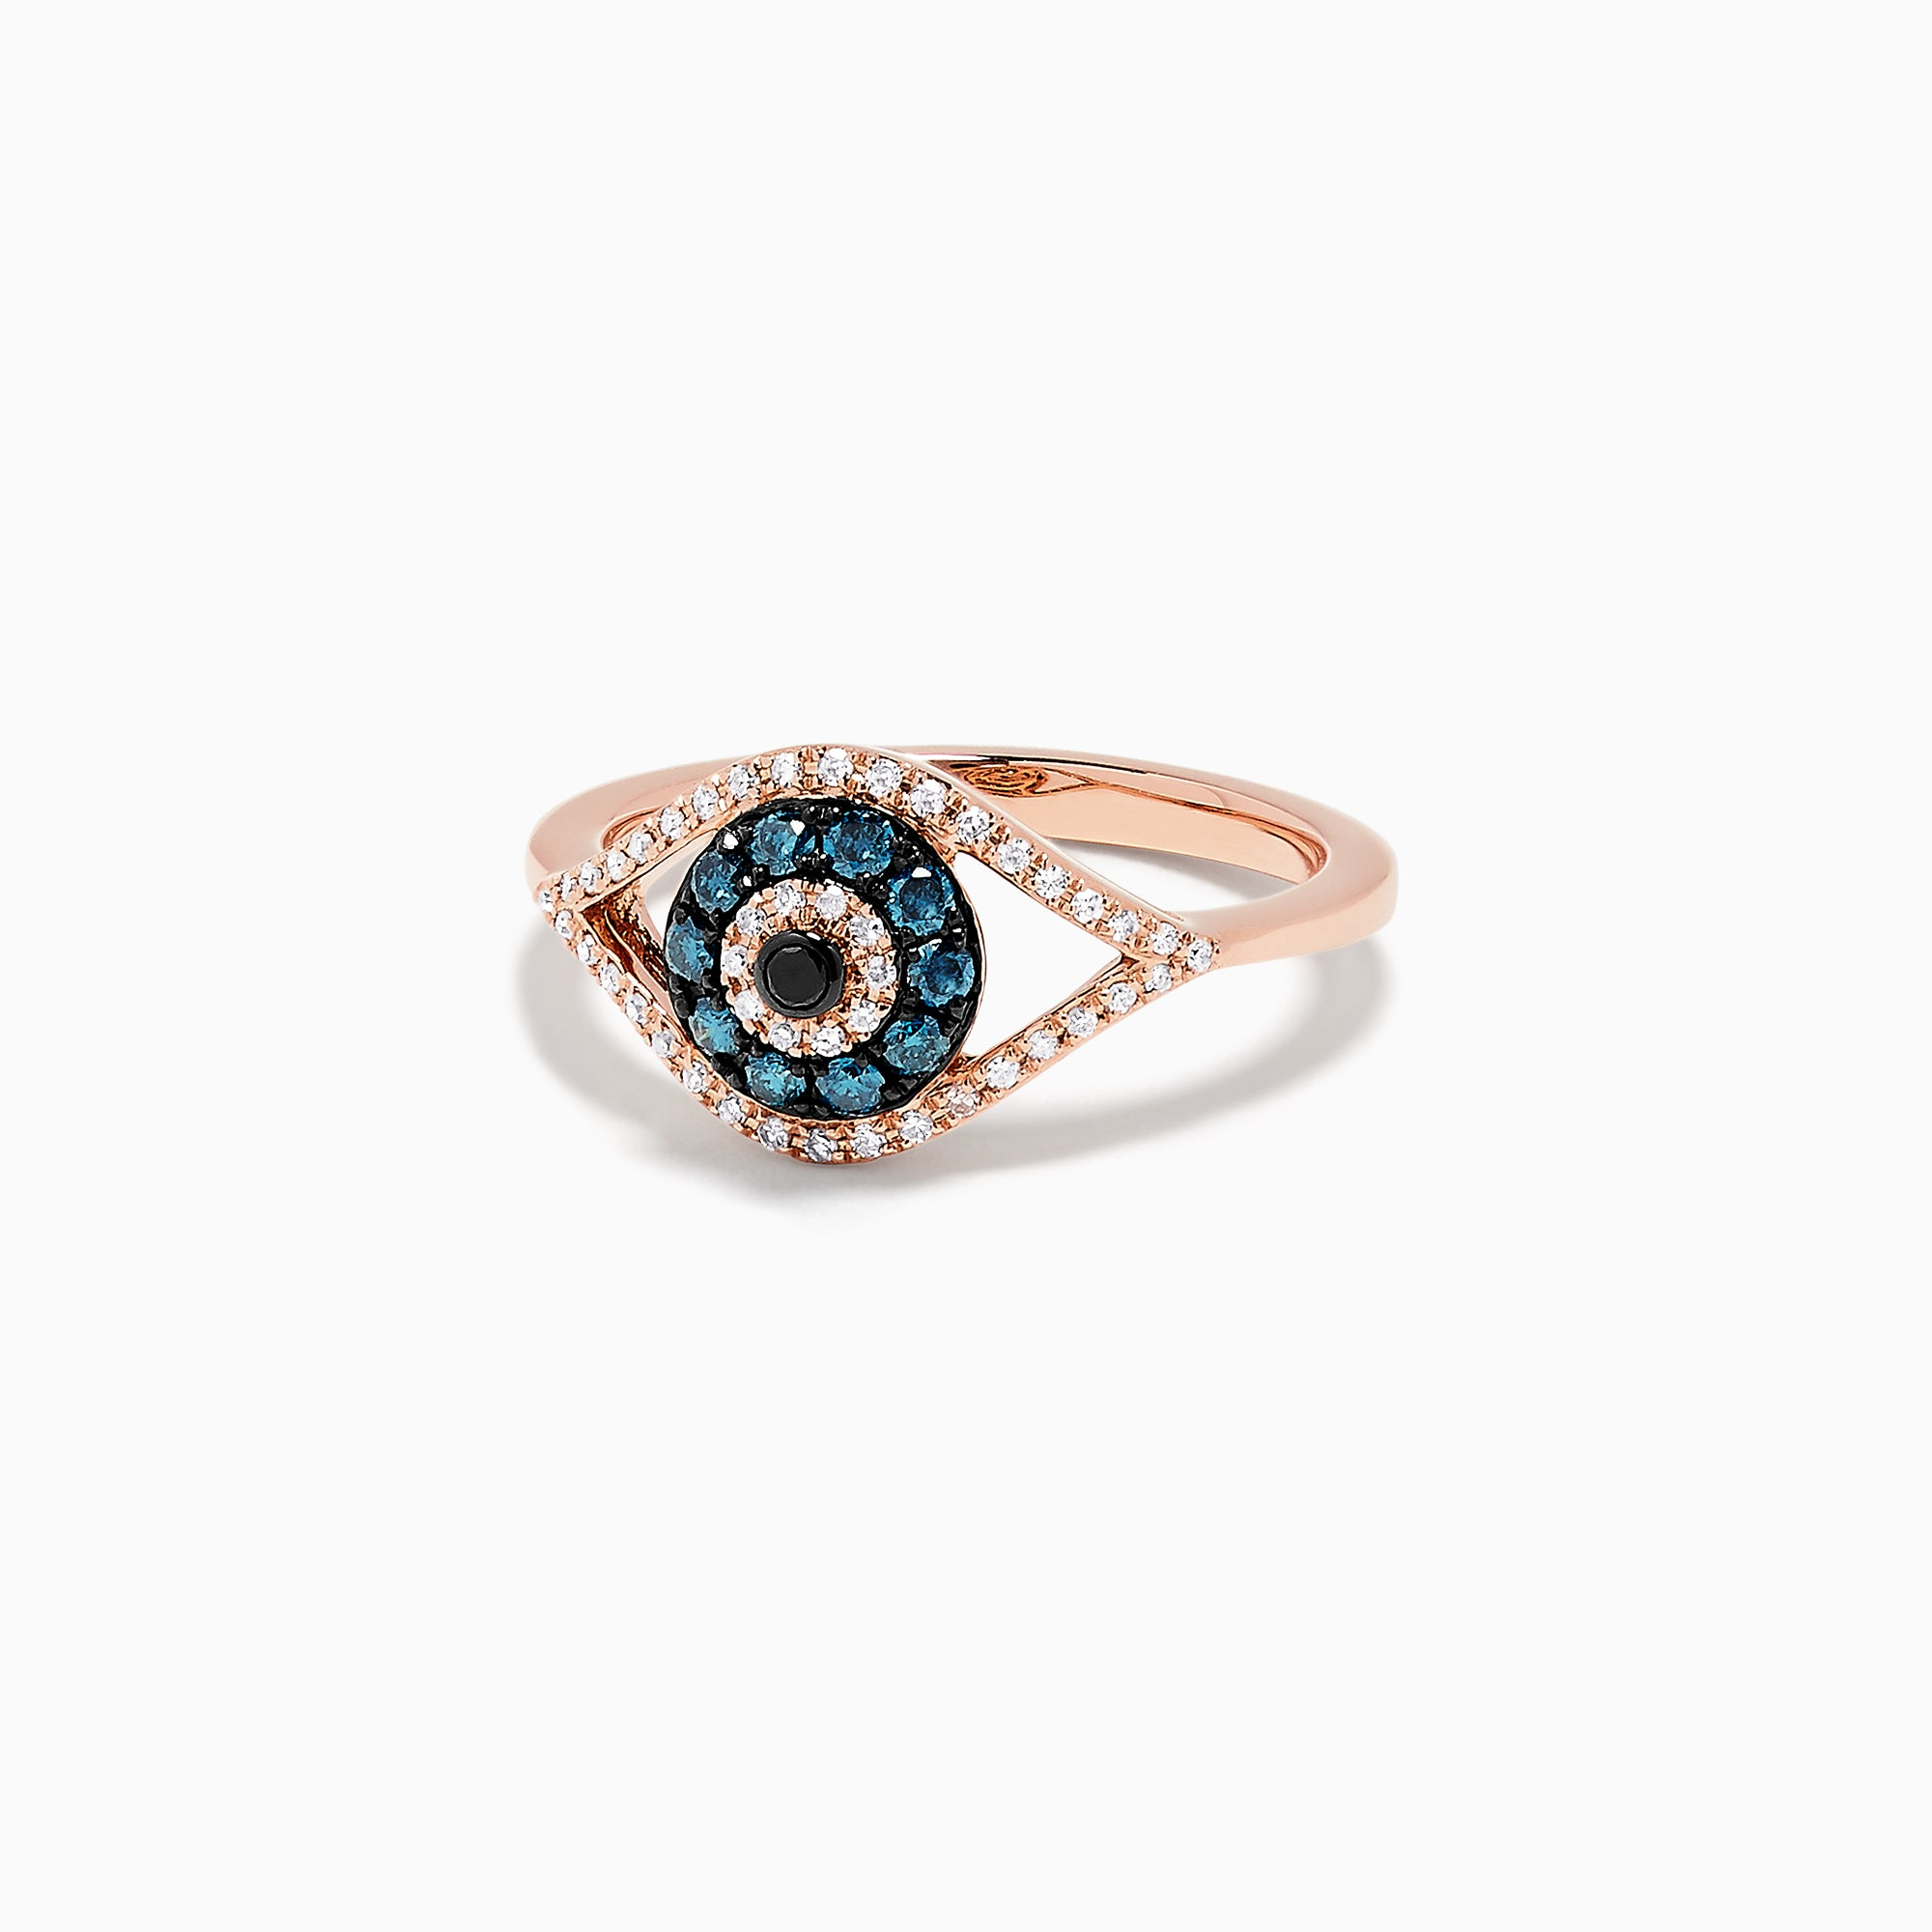 Effy Novelty 14K Gold Blue, White and Black Diamond Evil Eye Ring, 0.37 TCW